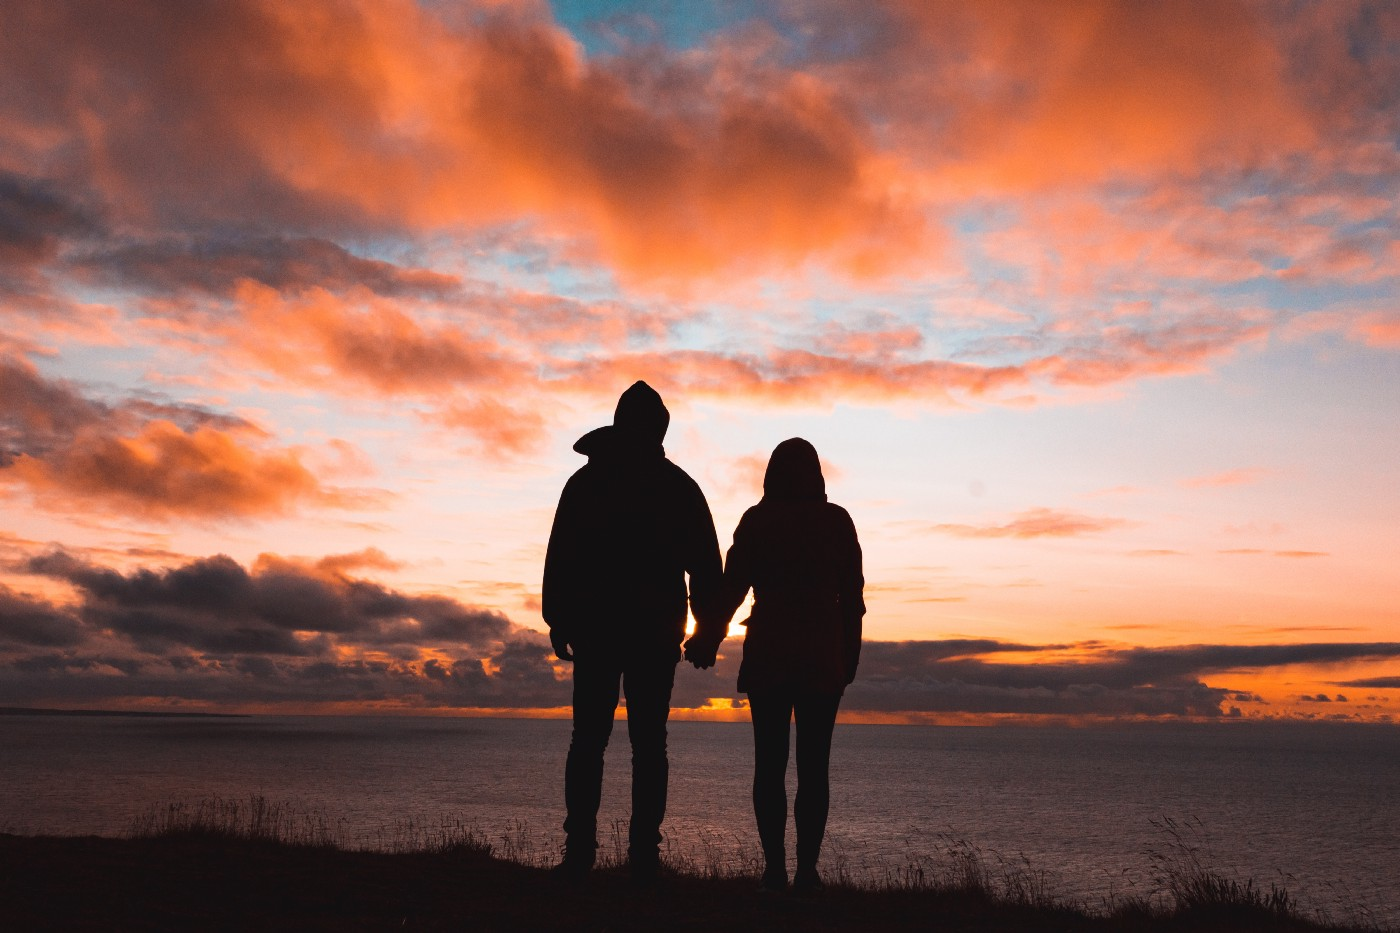 The silhouette of a couple holding hands while looking out across a body of water at a beautiful sunset reflected in a cloudy sky